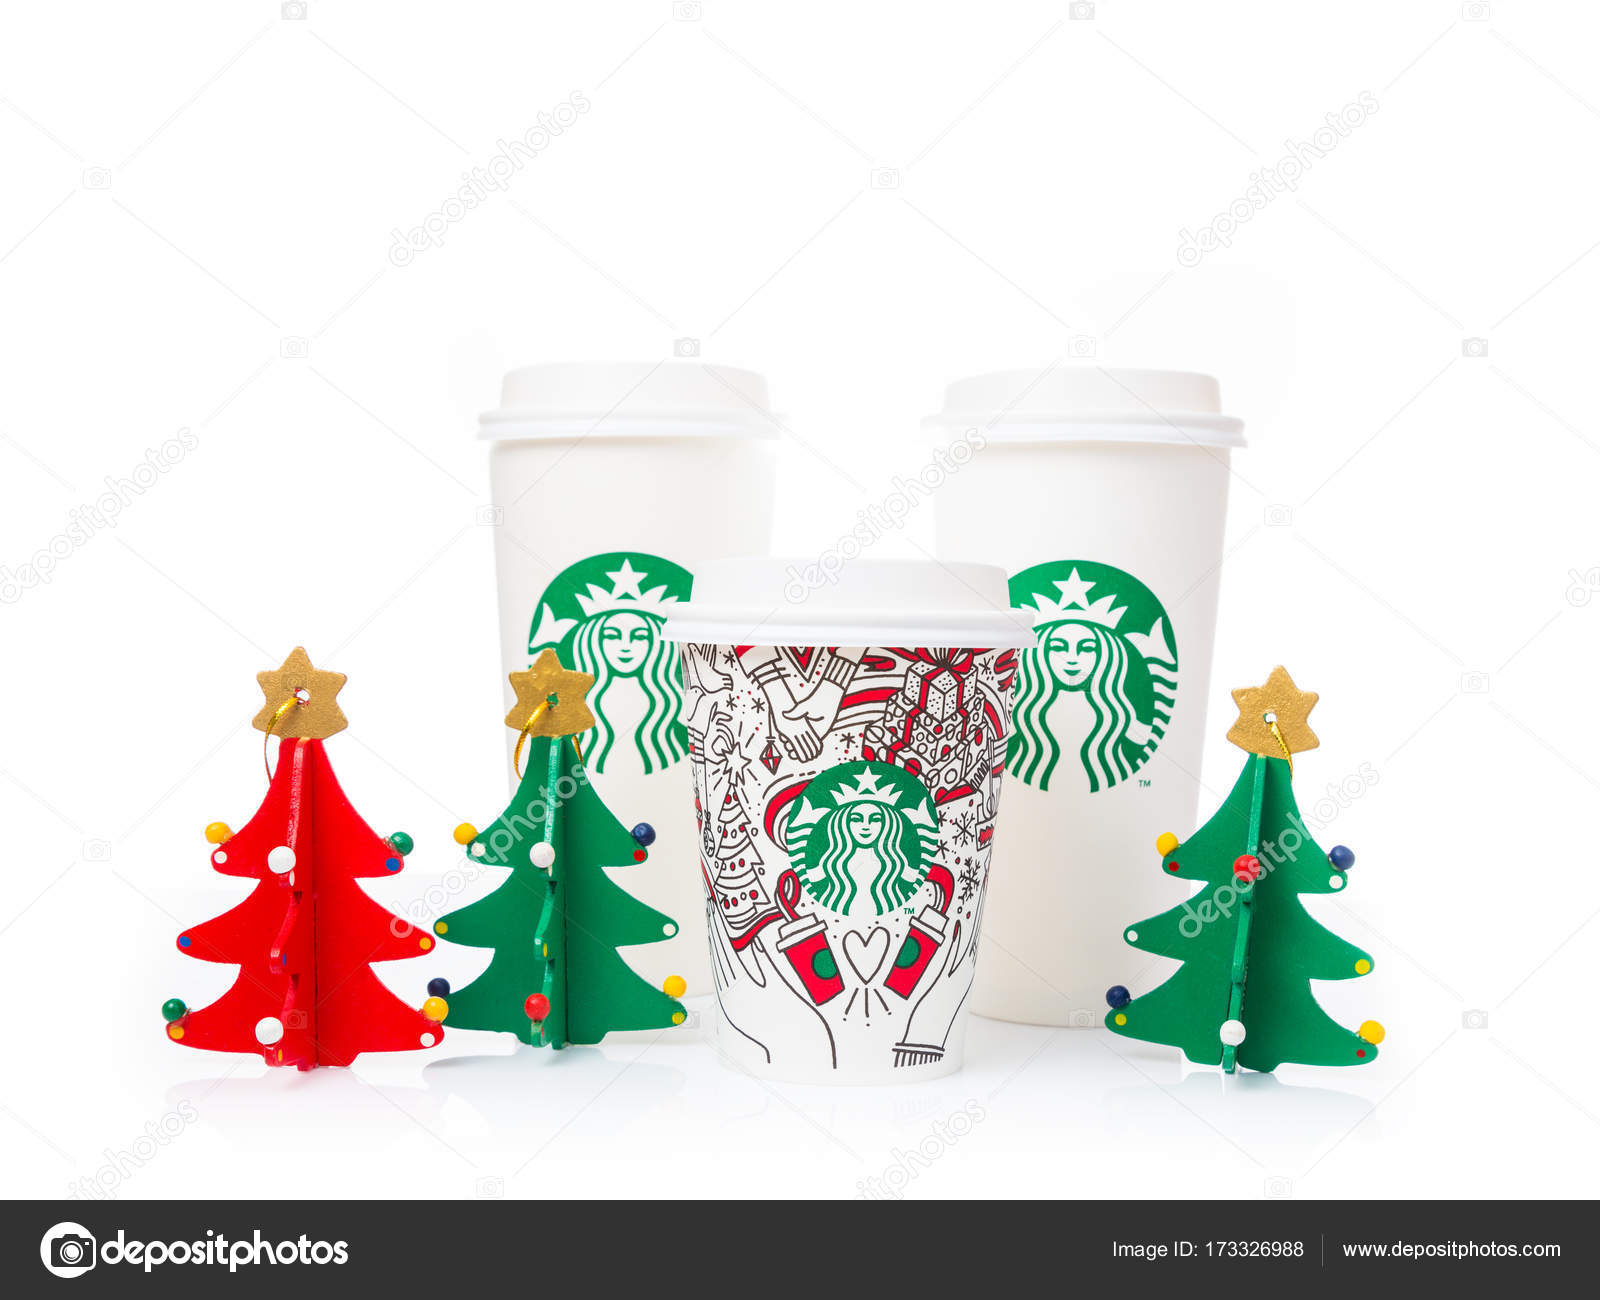 sizes, Grande and Venti, of Starbucks Coffee paper cups in beau ...